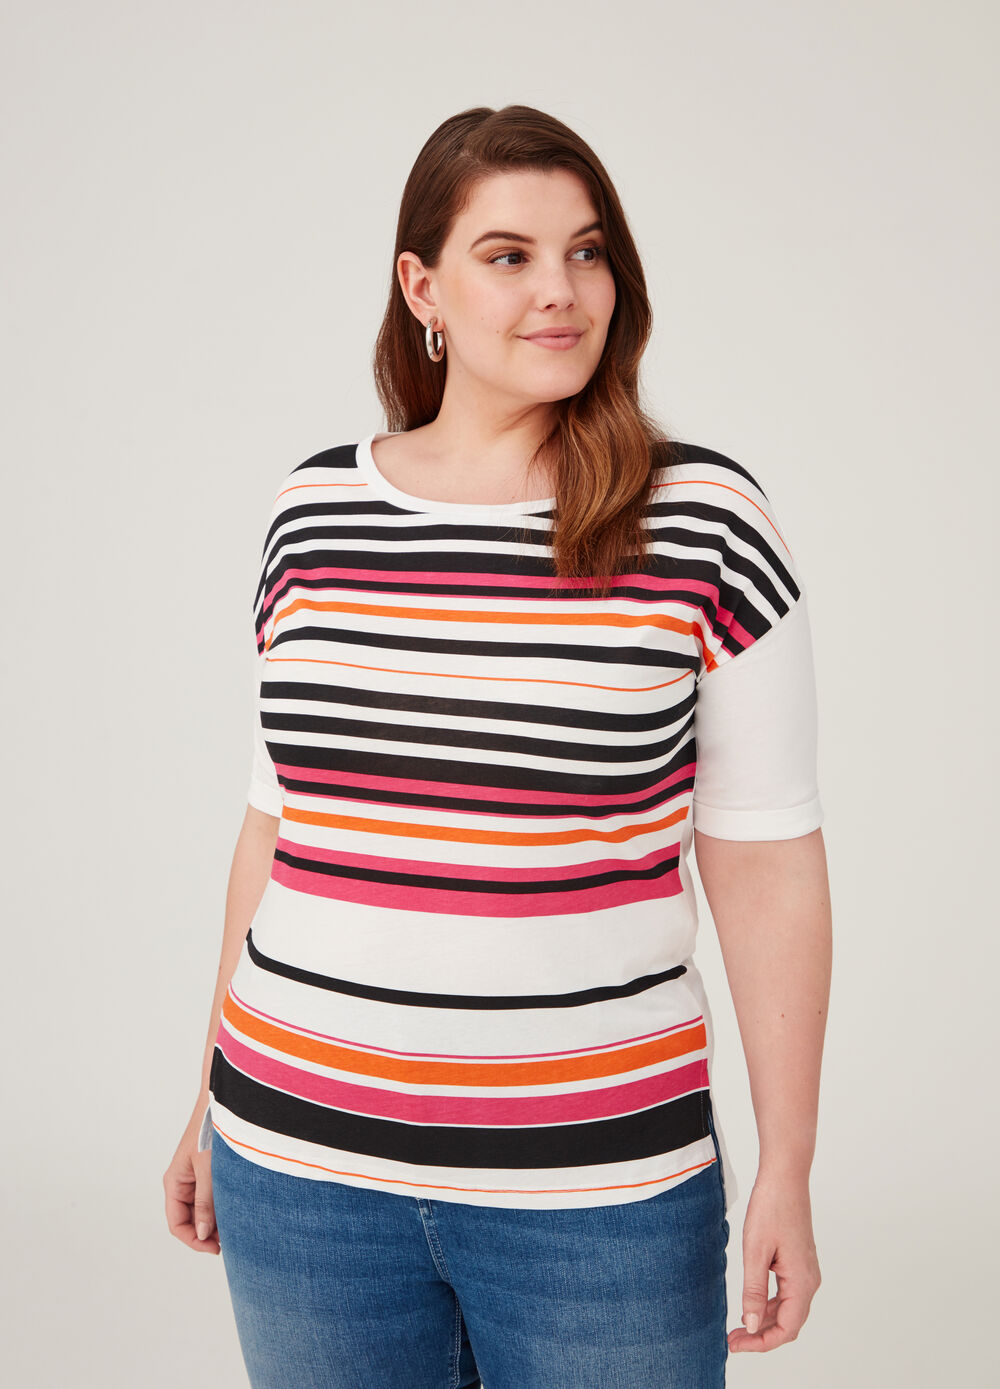 Curvy T-shirt with round neck and striped pattern